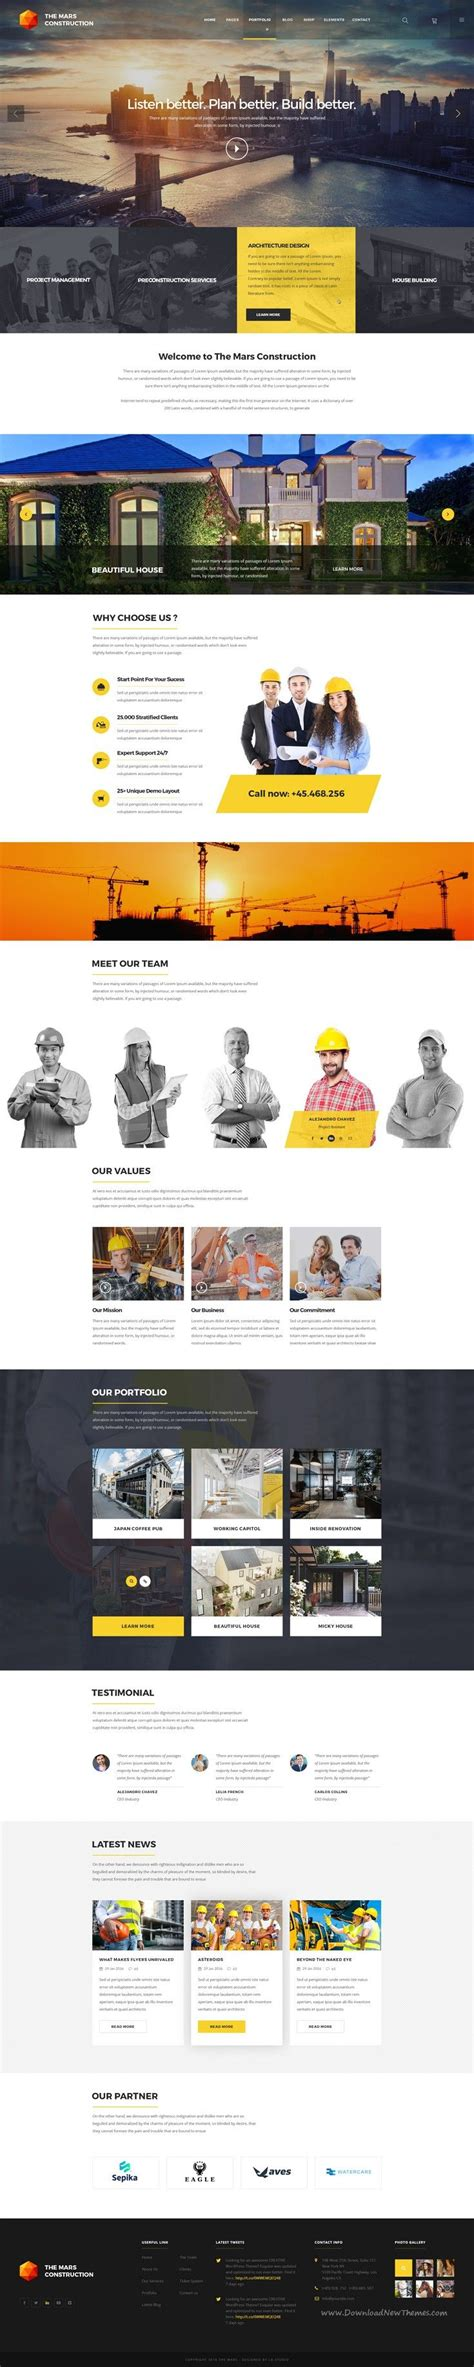 The Mars Is Creative Psd Template Ideal For Creative Agency Corporate Business Portfolio Construction Portfolio Template